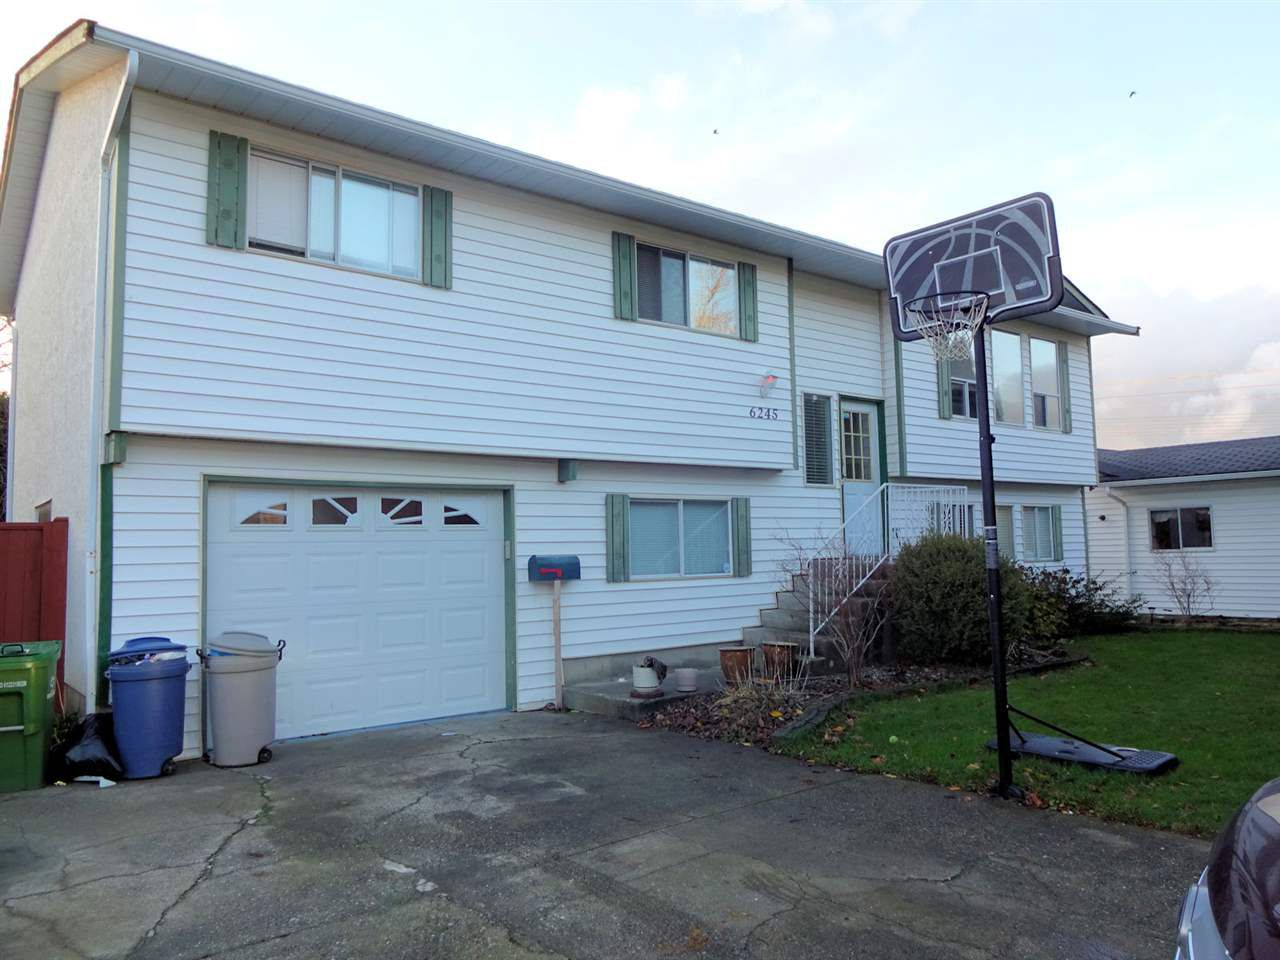 Main Photo: 6245 DUNDEE Place in Sardis: Sardis West Vedder Rd House for sale : MLS®# R2224915